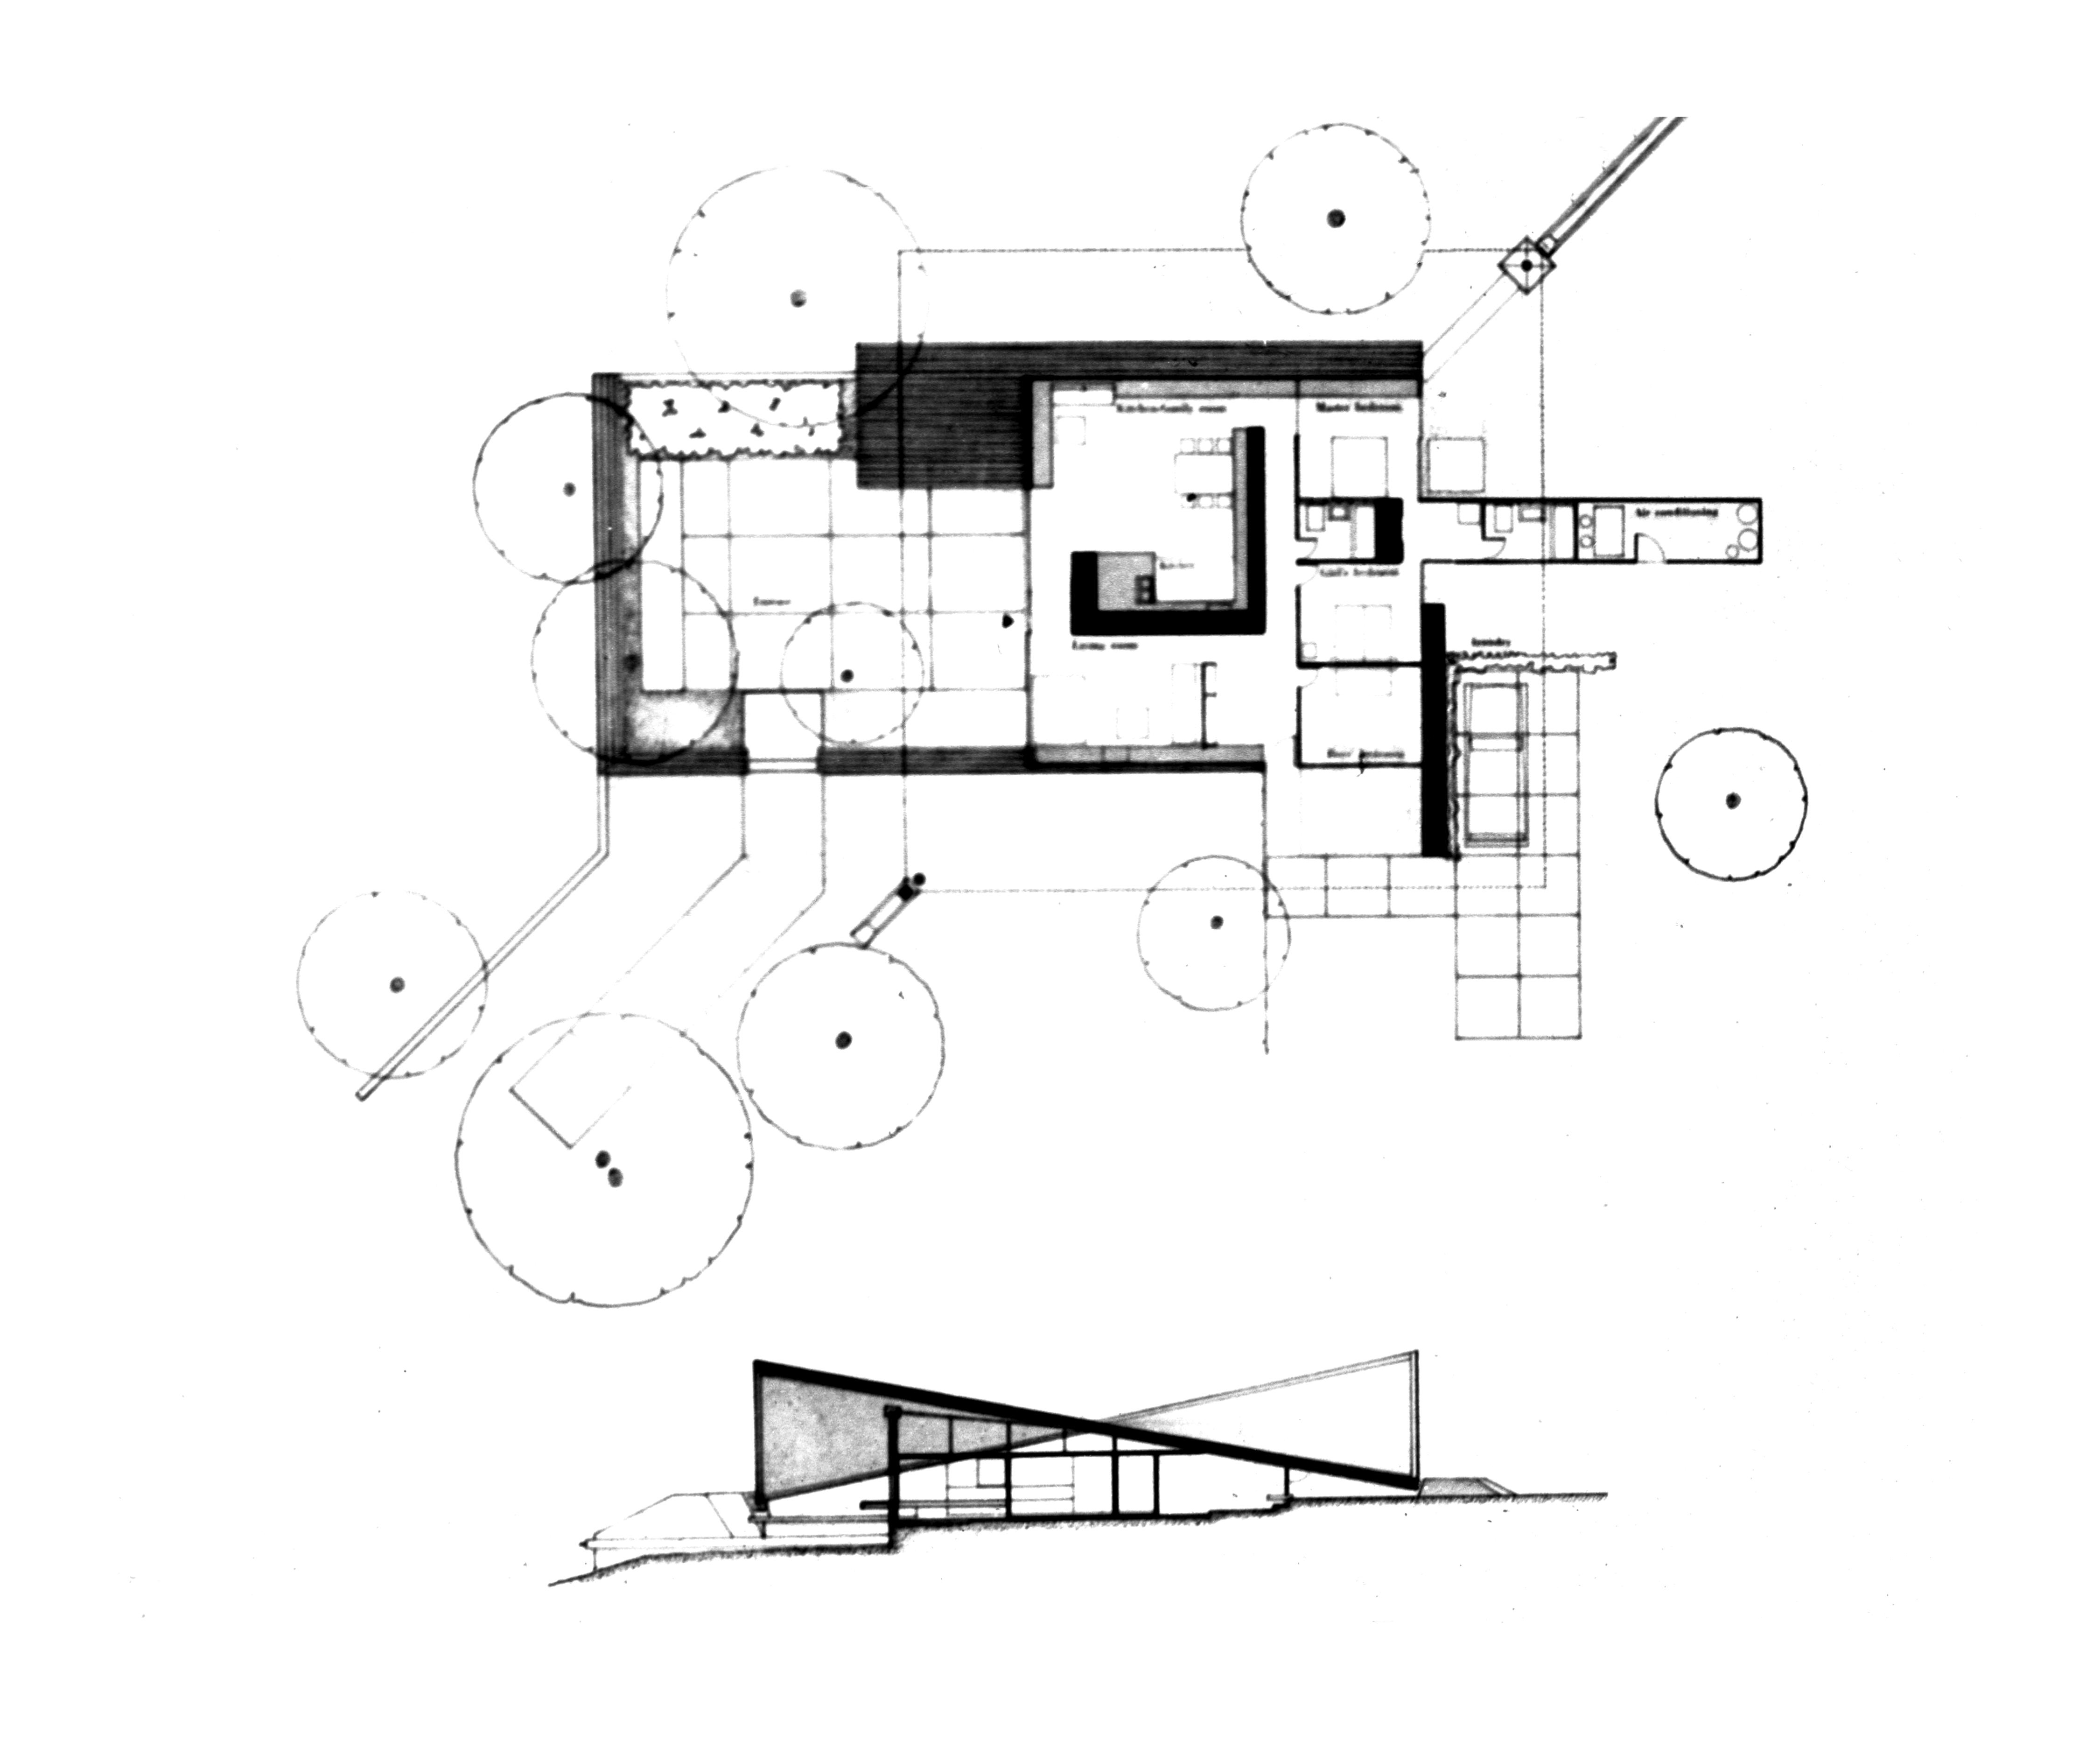 Raleigh House by Eduardo Catalano (646AR) — Atlas of Places on colorado houses, seattle houses, paris houses, alpharetta houses, macon houses, missouri houses, athens houses, mesa houses, utah houses, galveston houses, albany houses, cincinnati houses, new haven houses, fort wayne houses, tampa houses, st. louis houses, coral gables houses, united states houses, green bay houses, oxford houses,